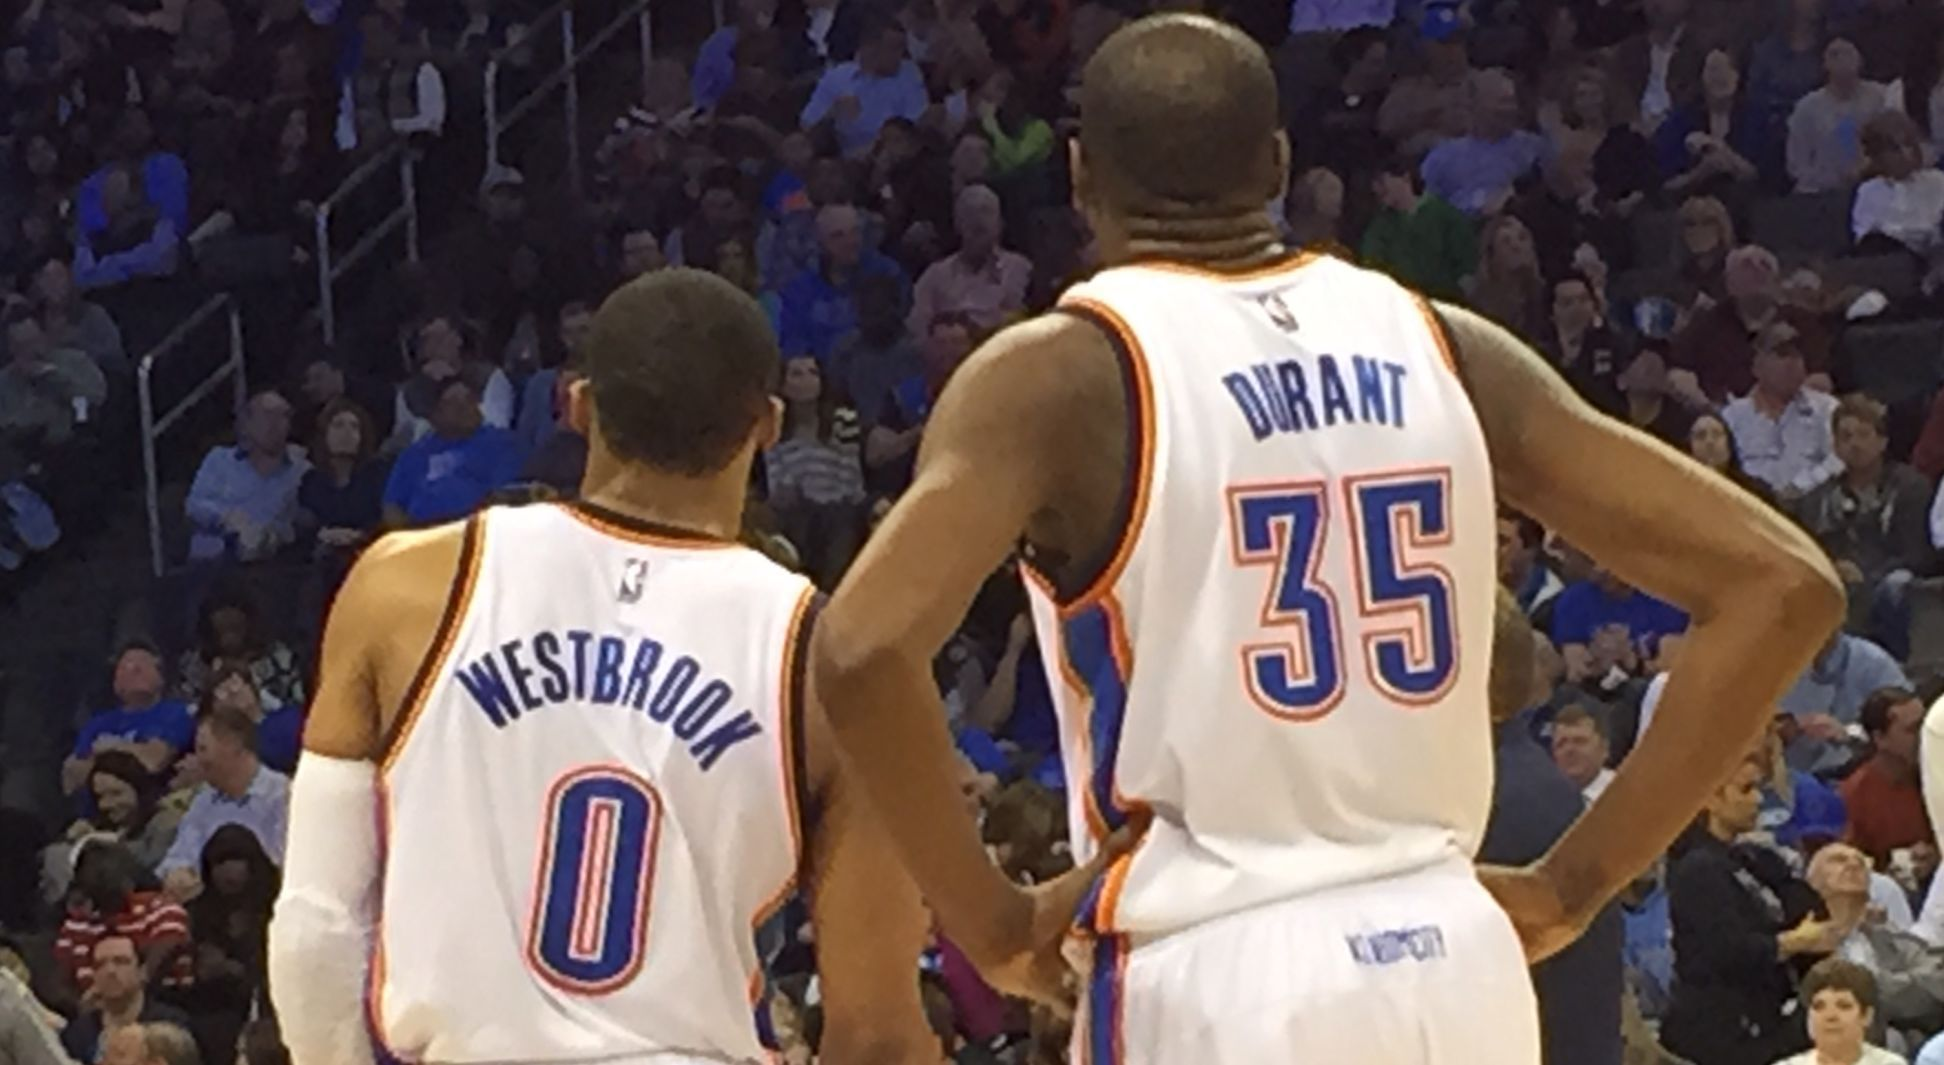 Kevin Durant is returning to Oklahoma City as a Warrior